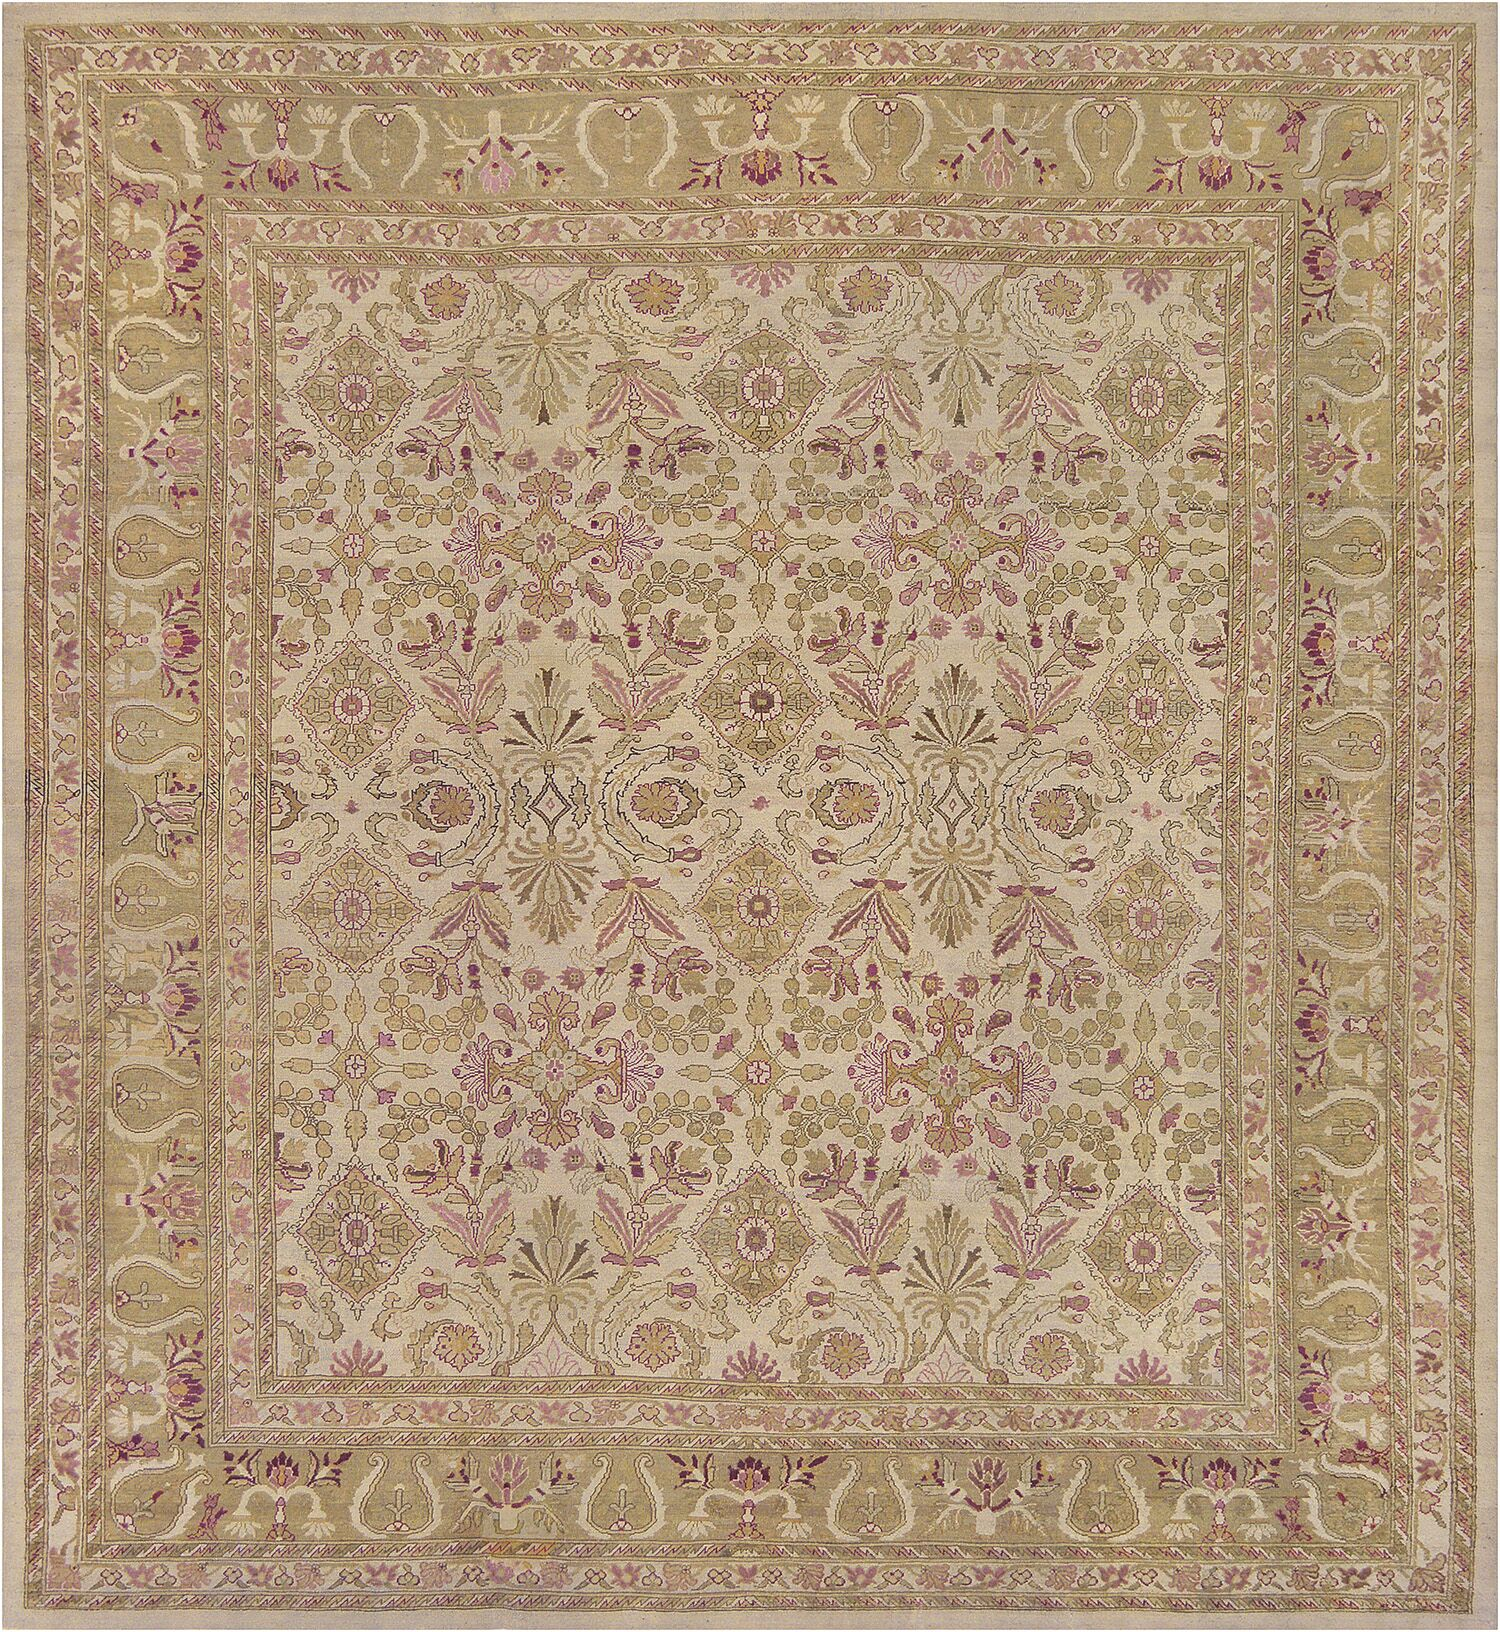 One-of-a-Kind Antique Agra Handwoven Wool Beige Area Rug